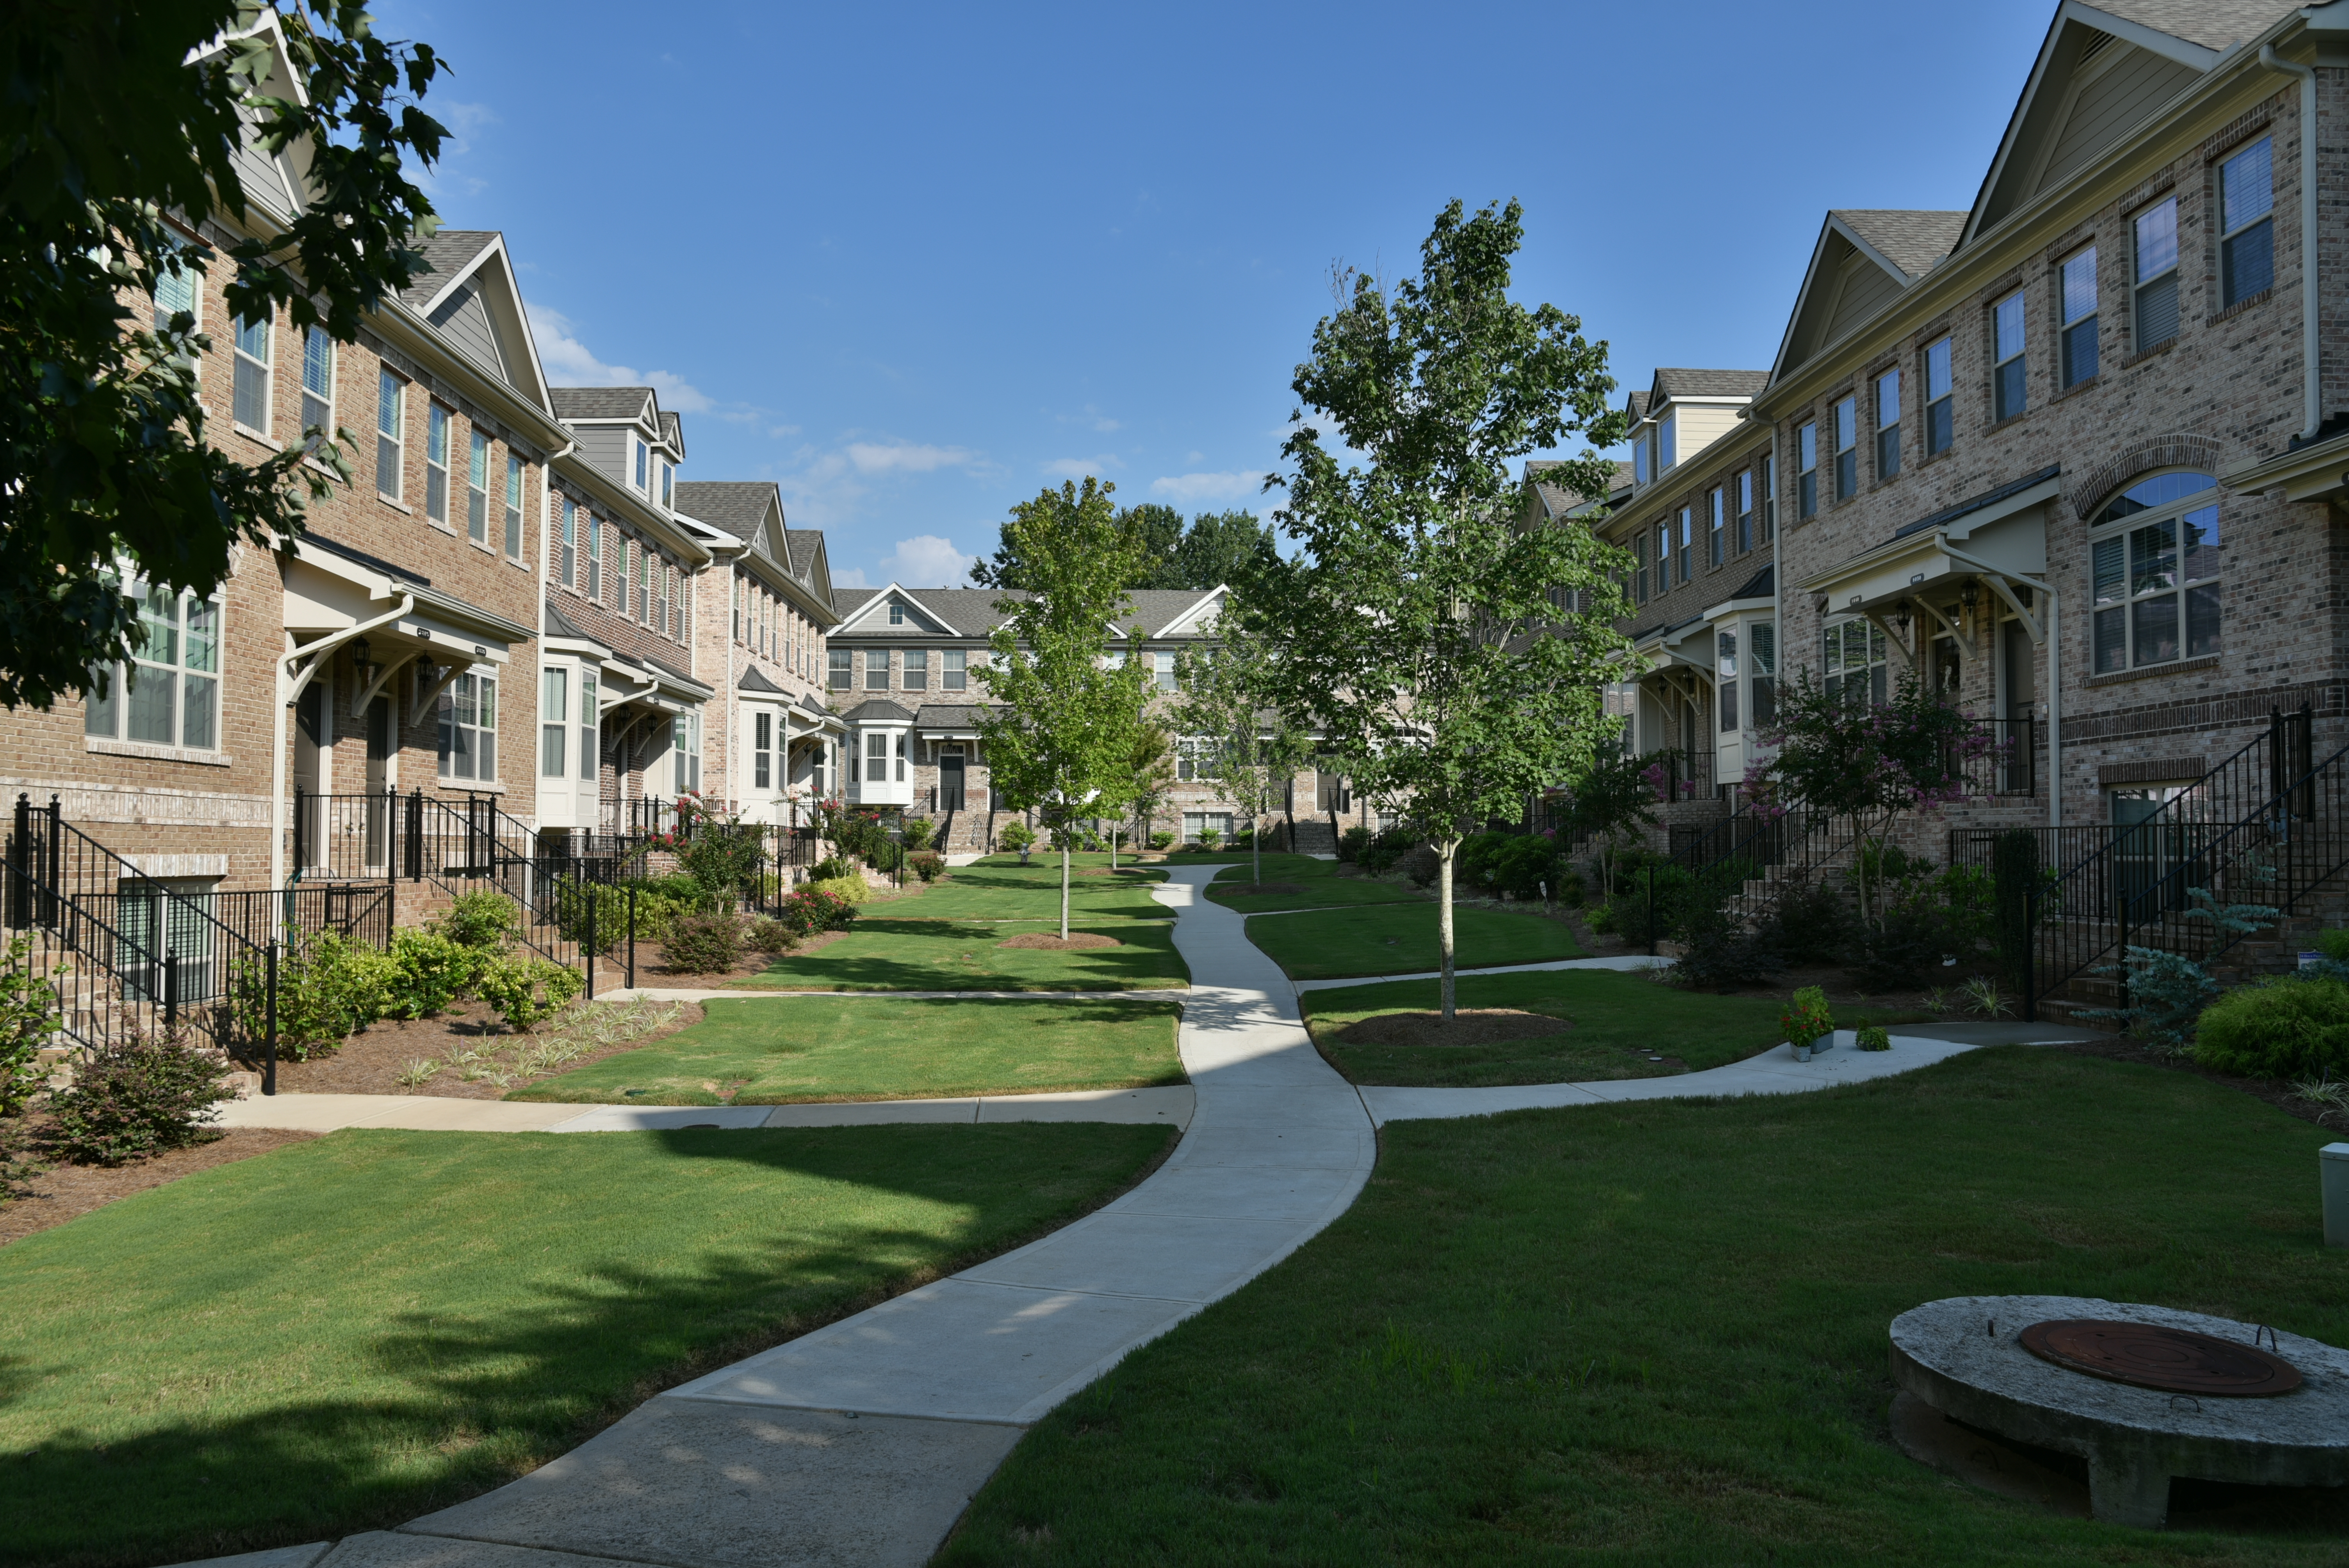 Two rows of townhomes on either side of a green space with a sidewalk in the middle.